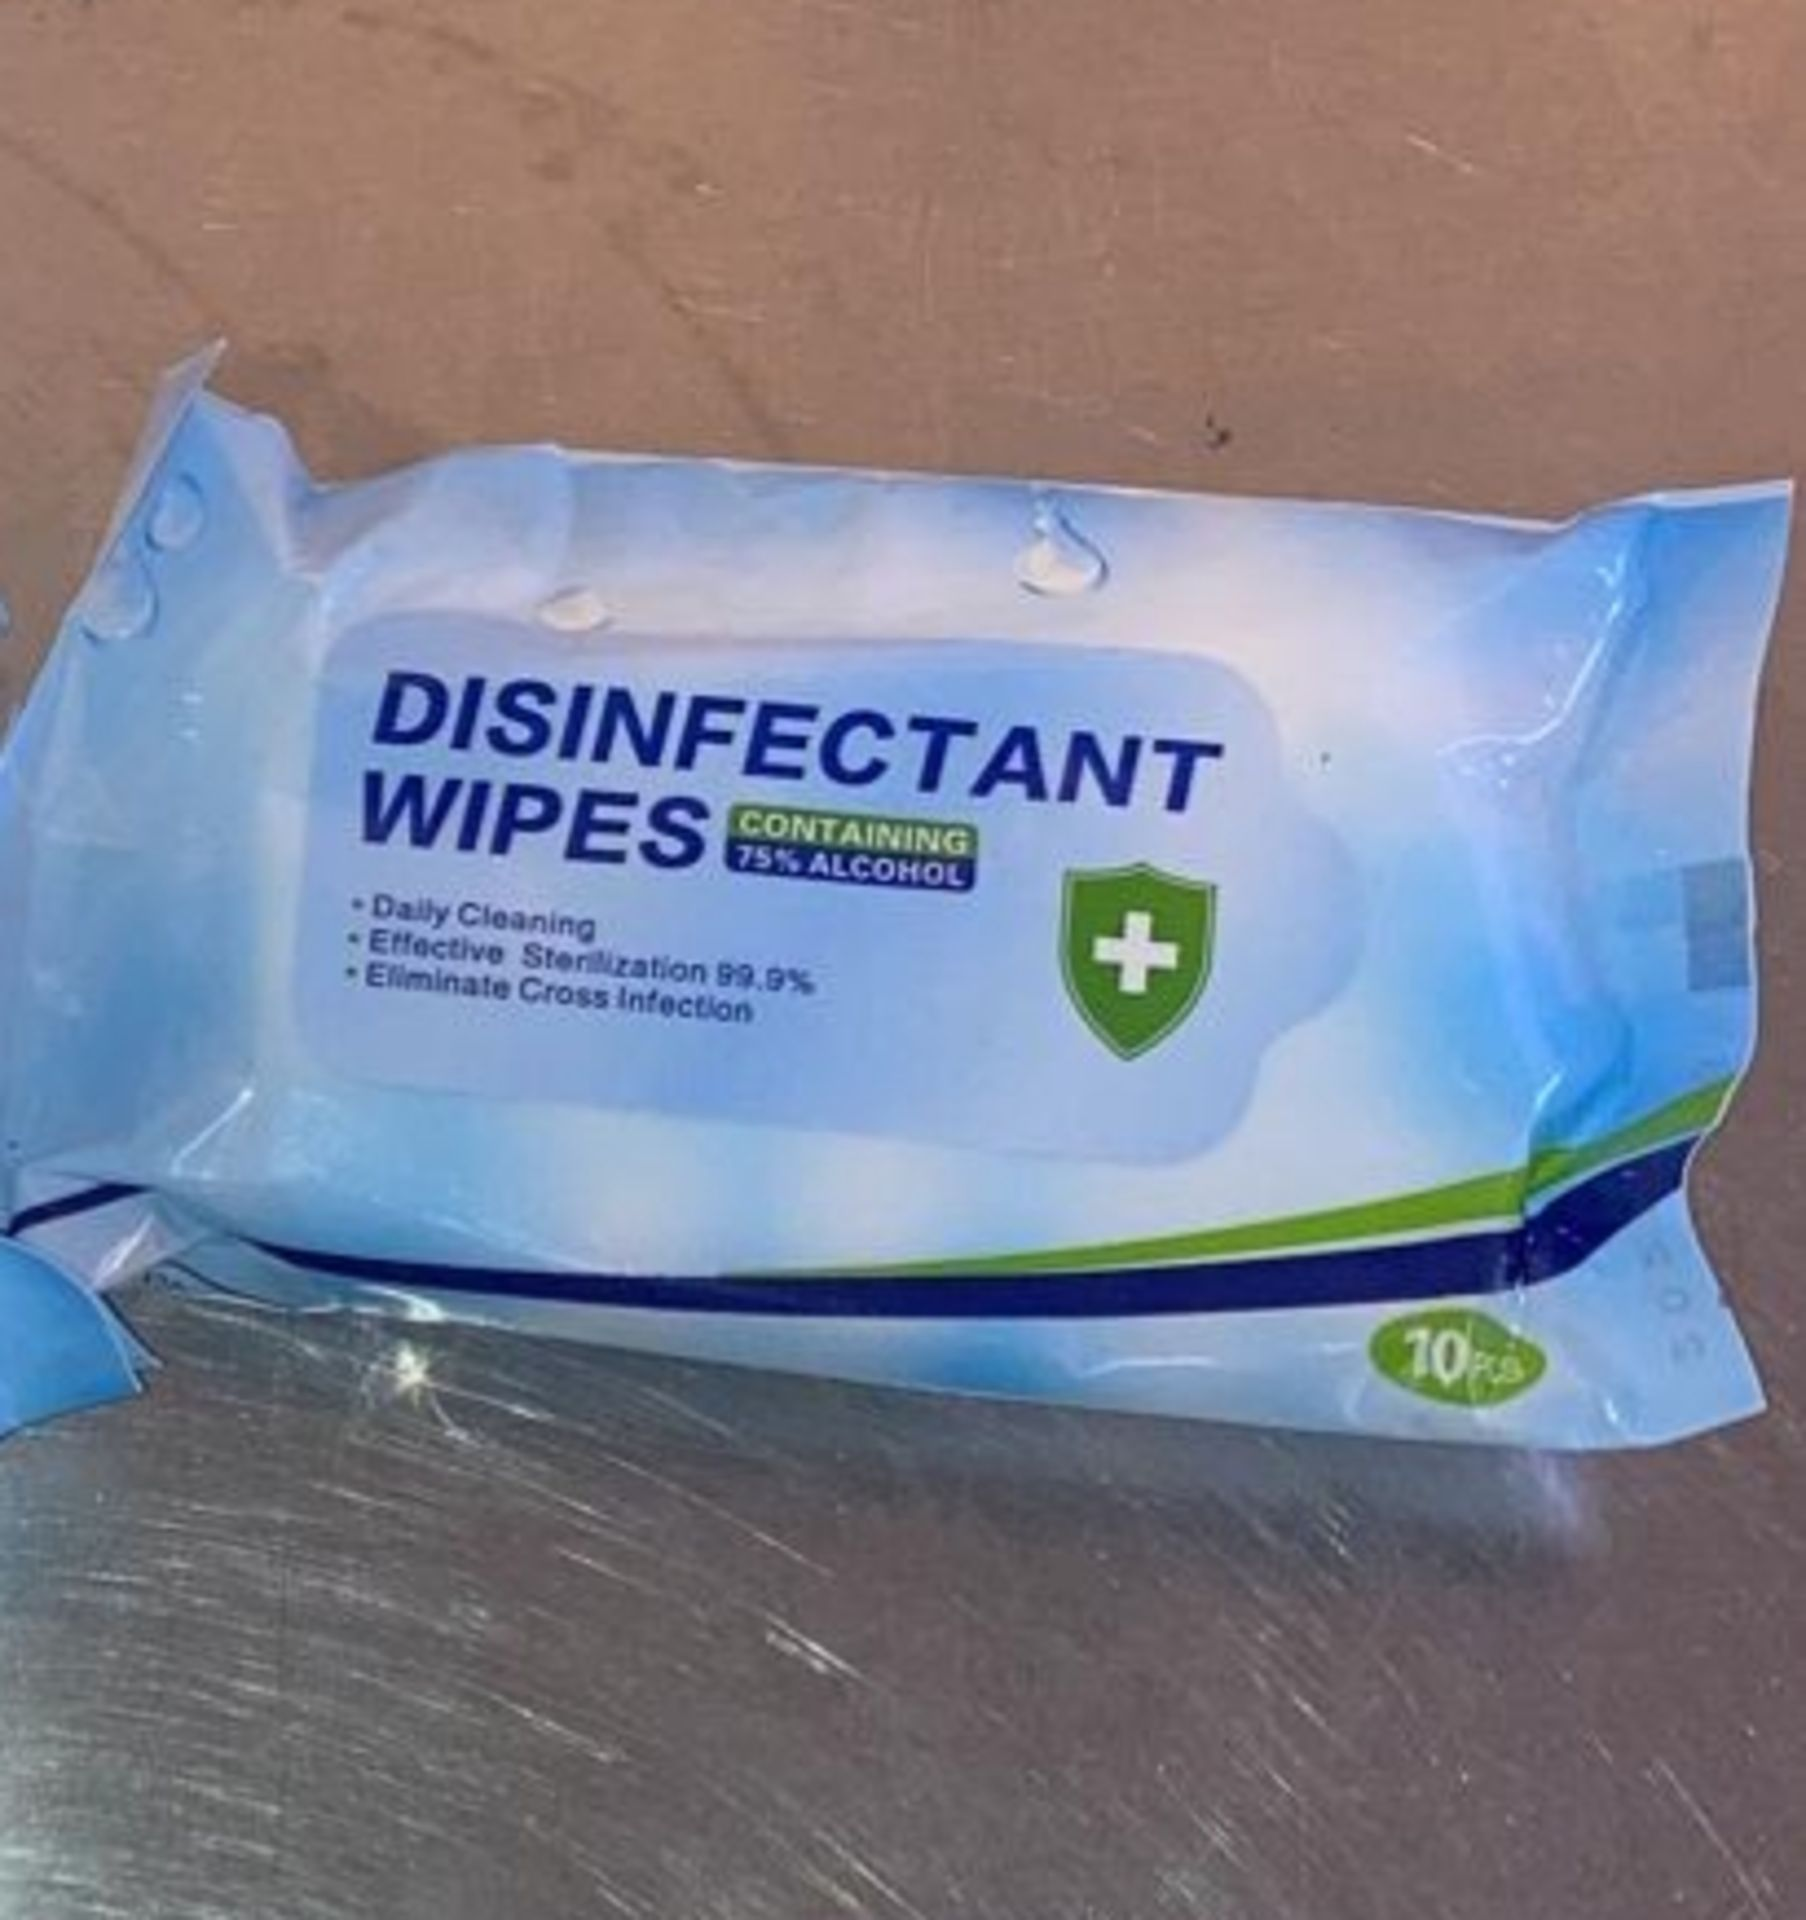 50,000 Antibacterial Disinfectant Wipes - Image 2 of 4